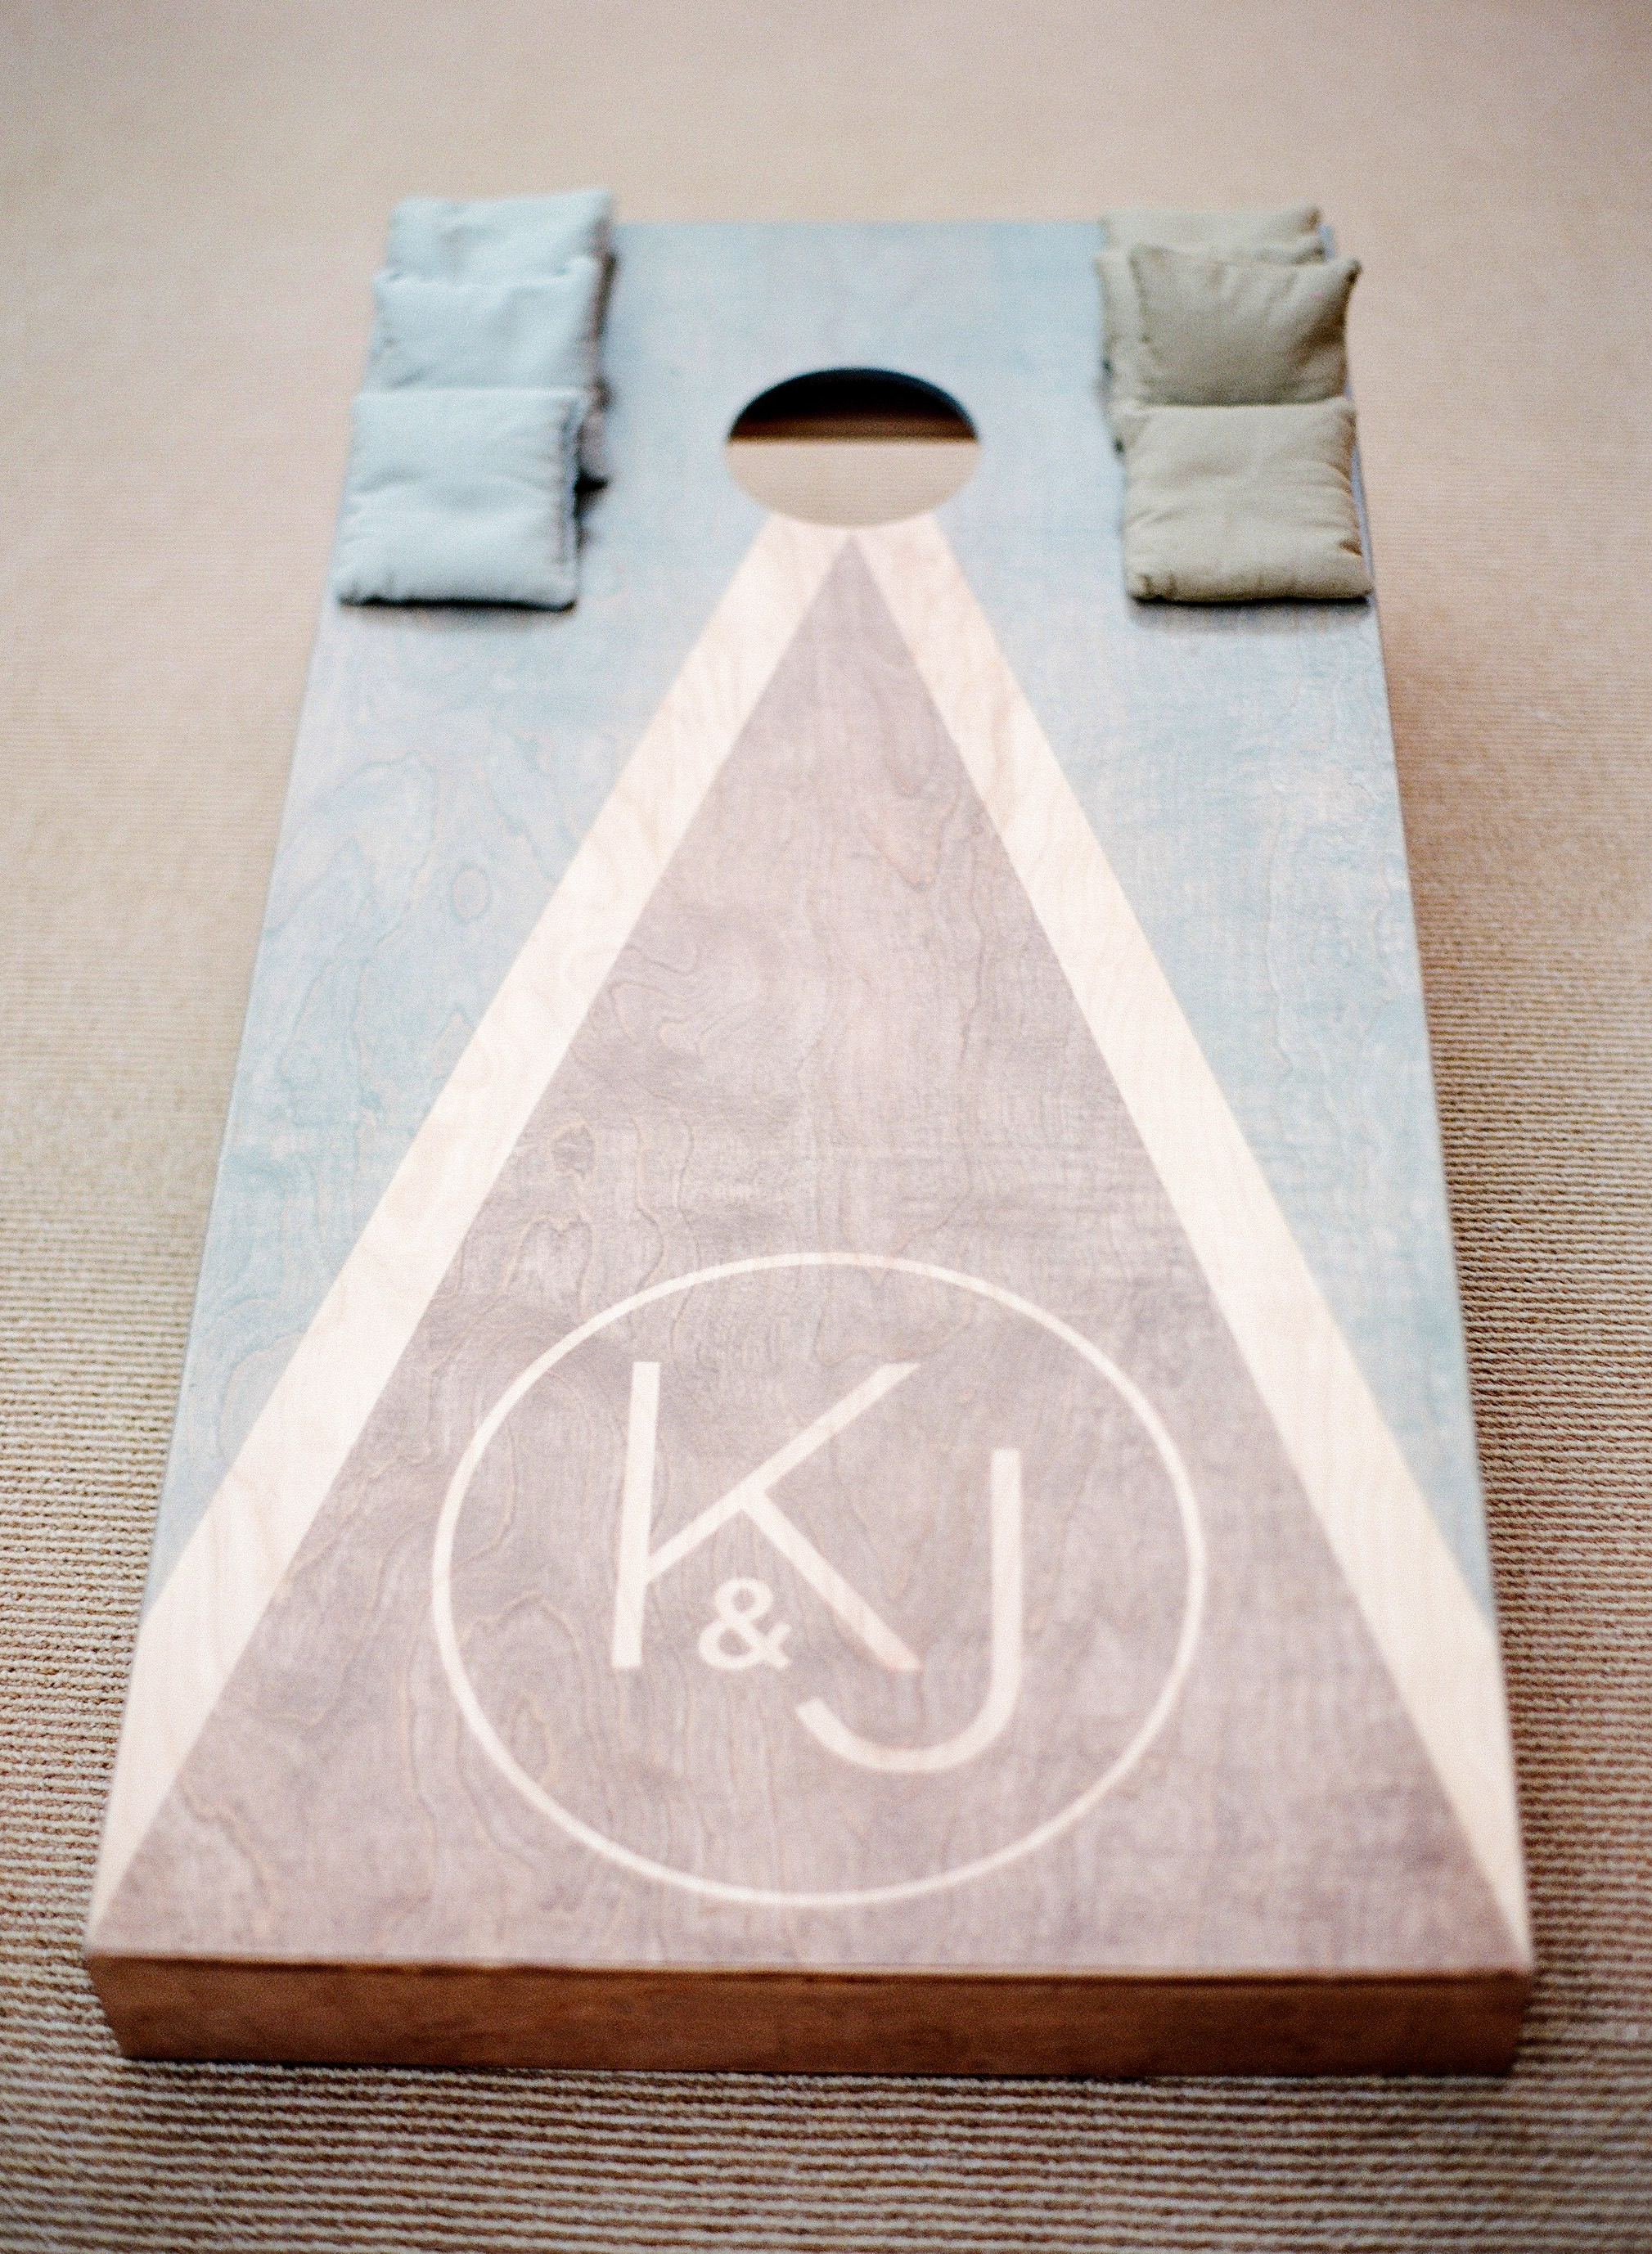 kelsey joc wedding santa barbara california monogram cornhole